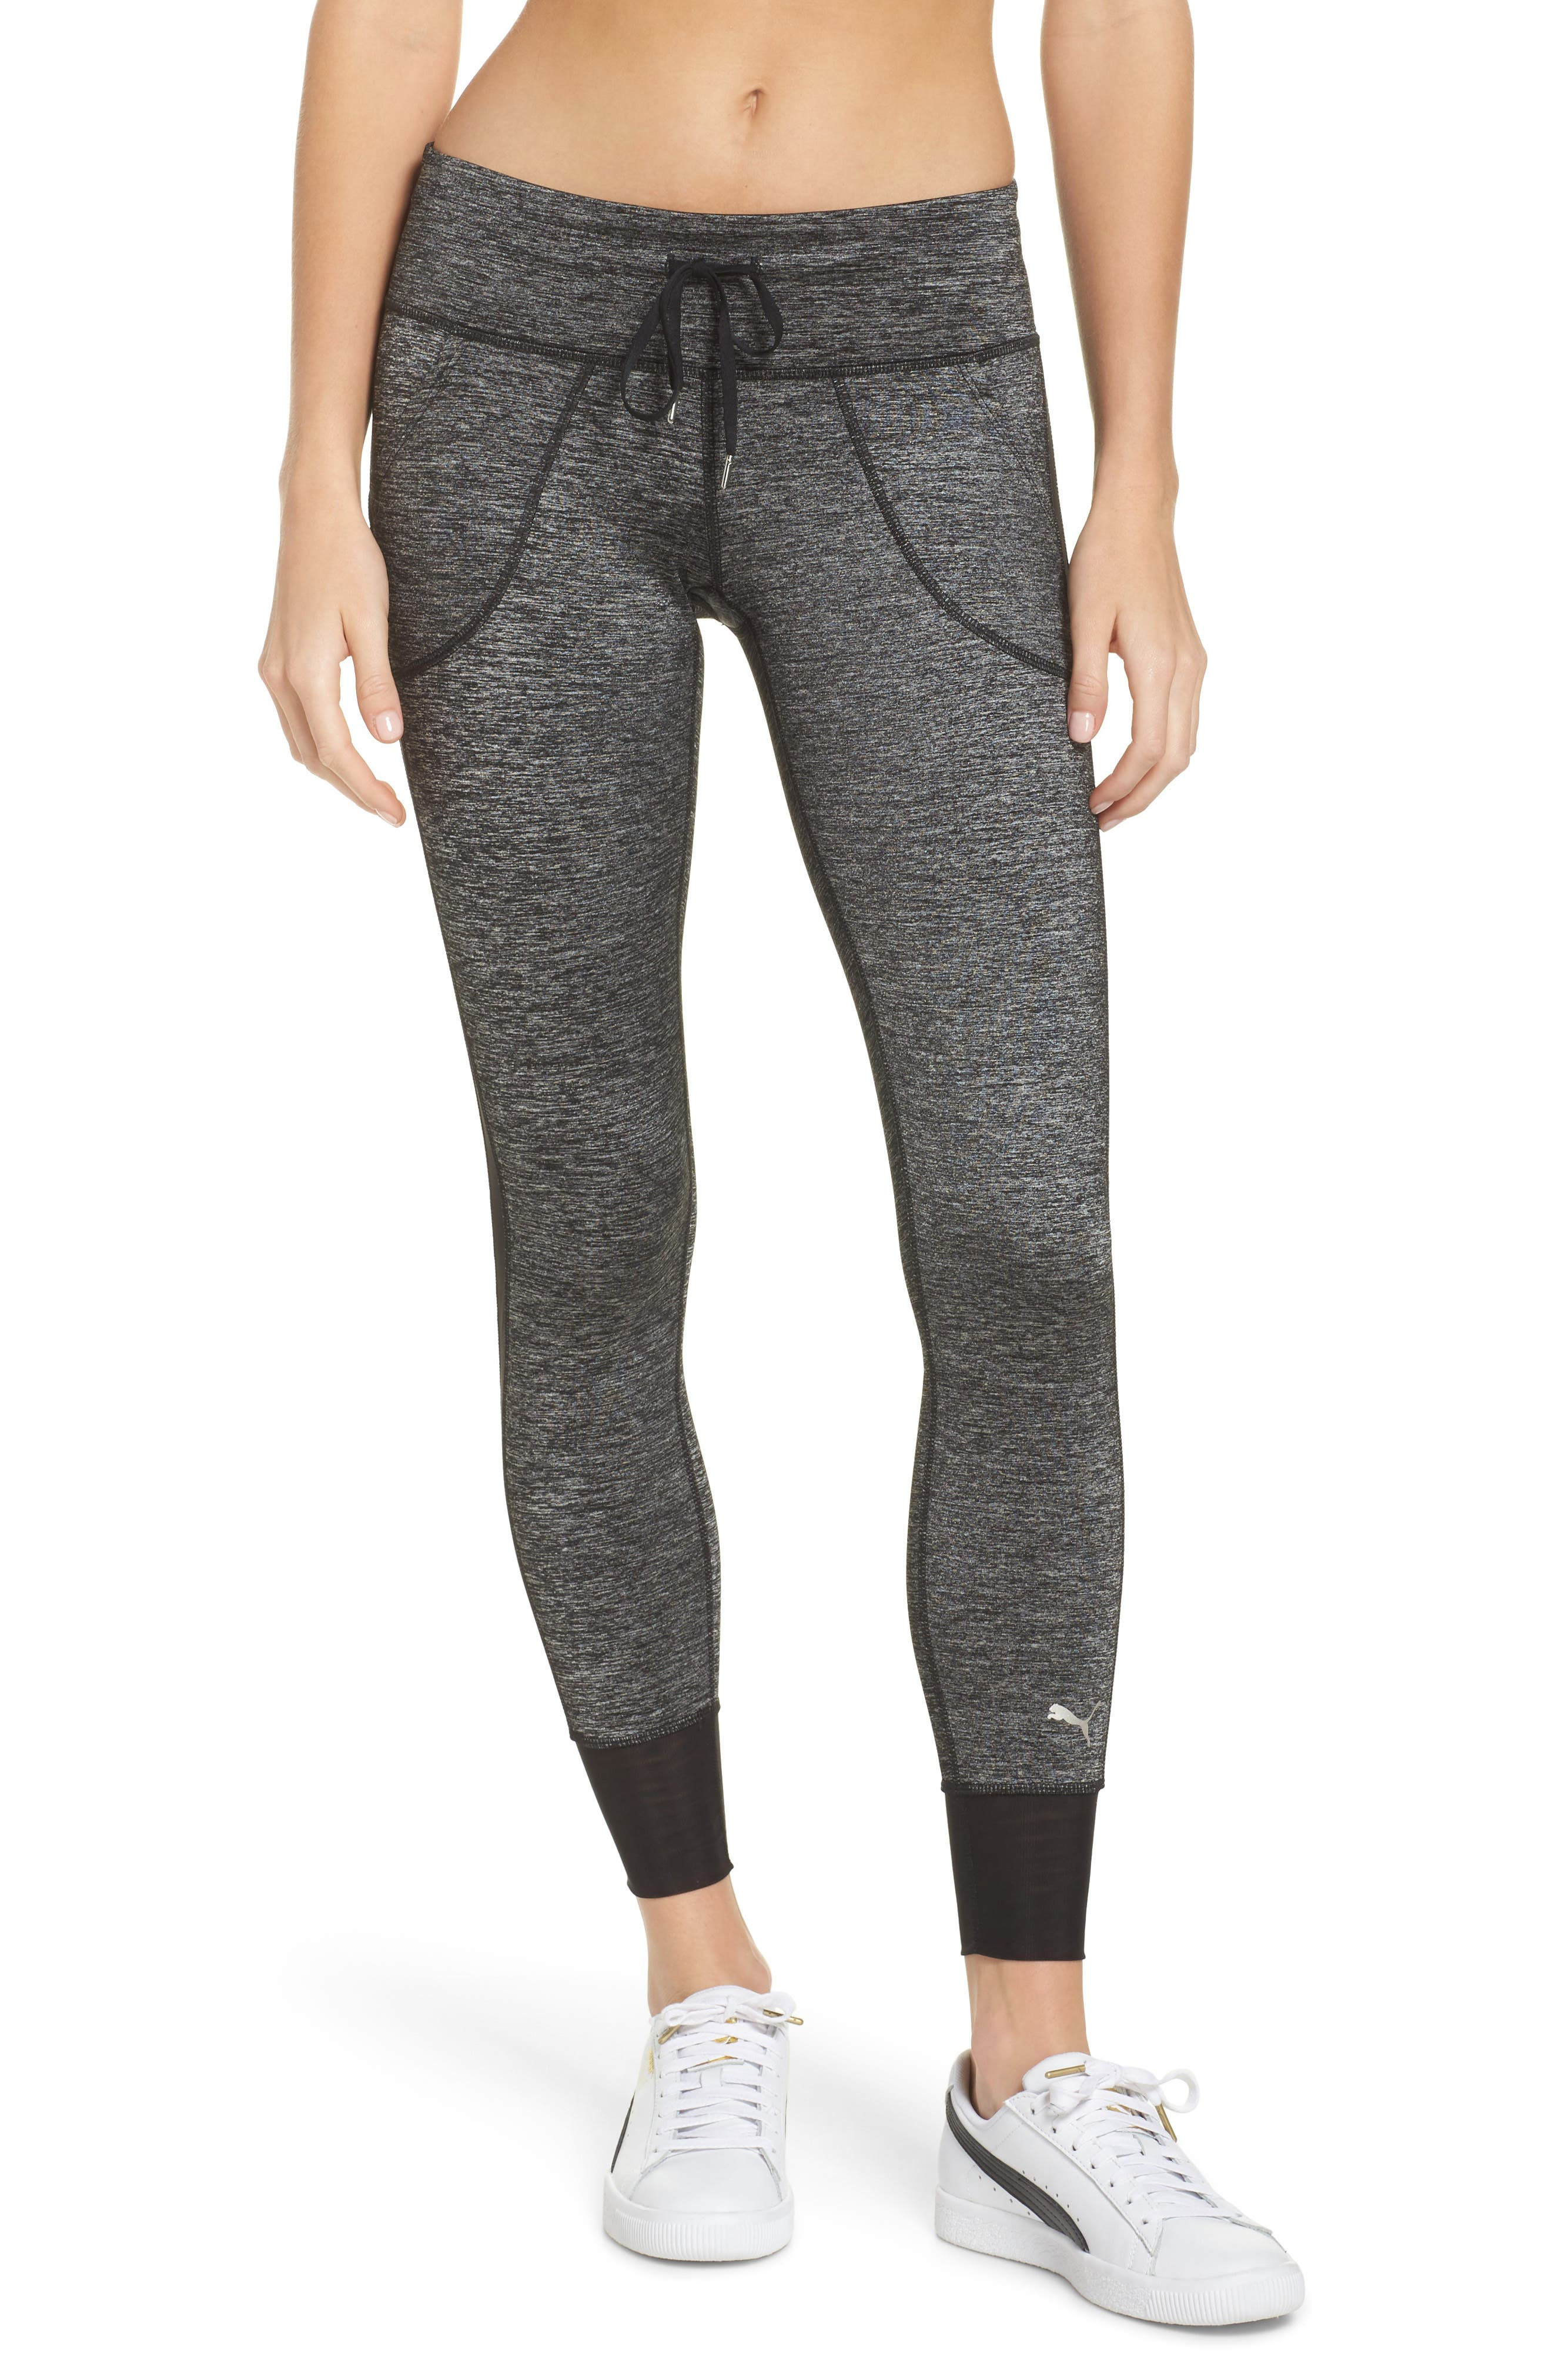 Explosive Training Leggings,                         Main,                         color,